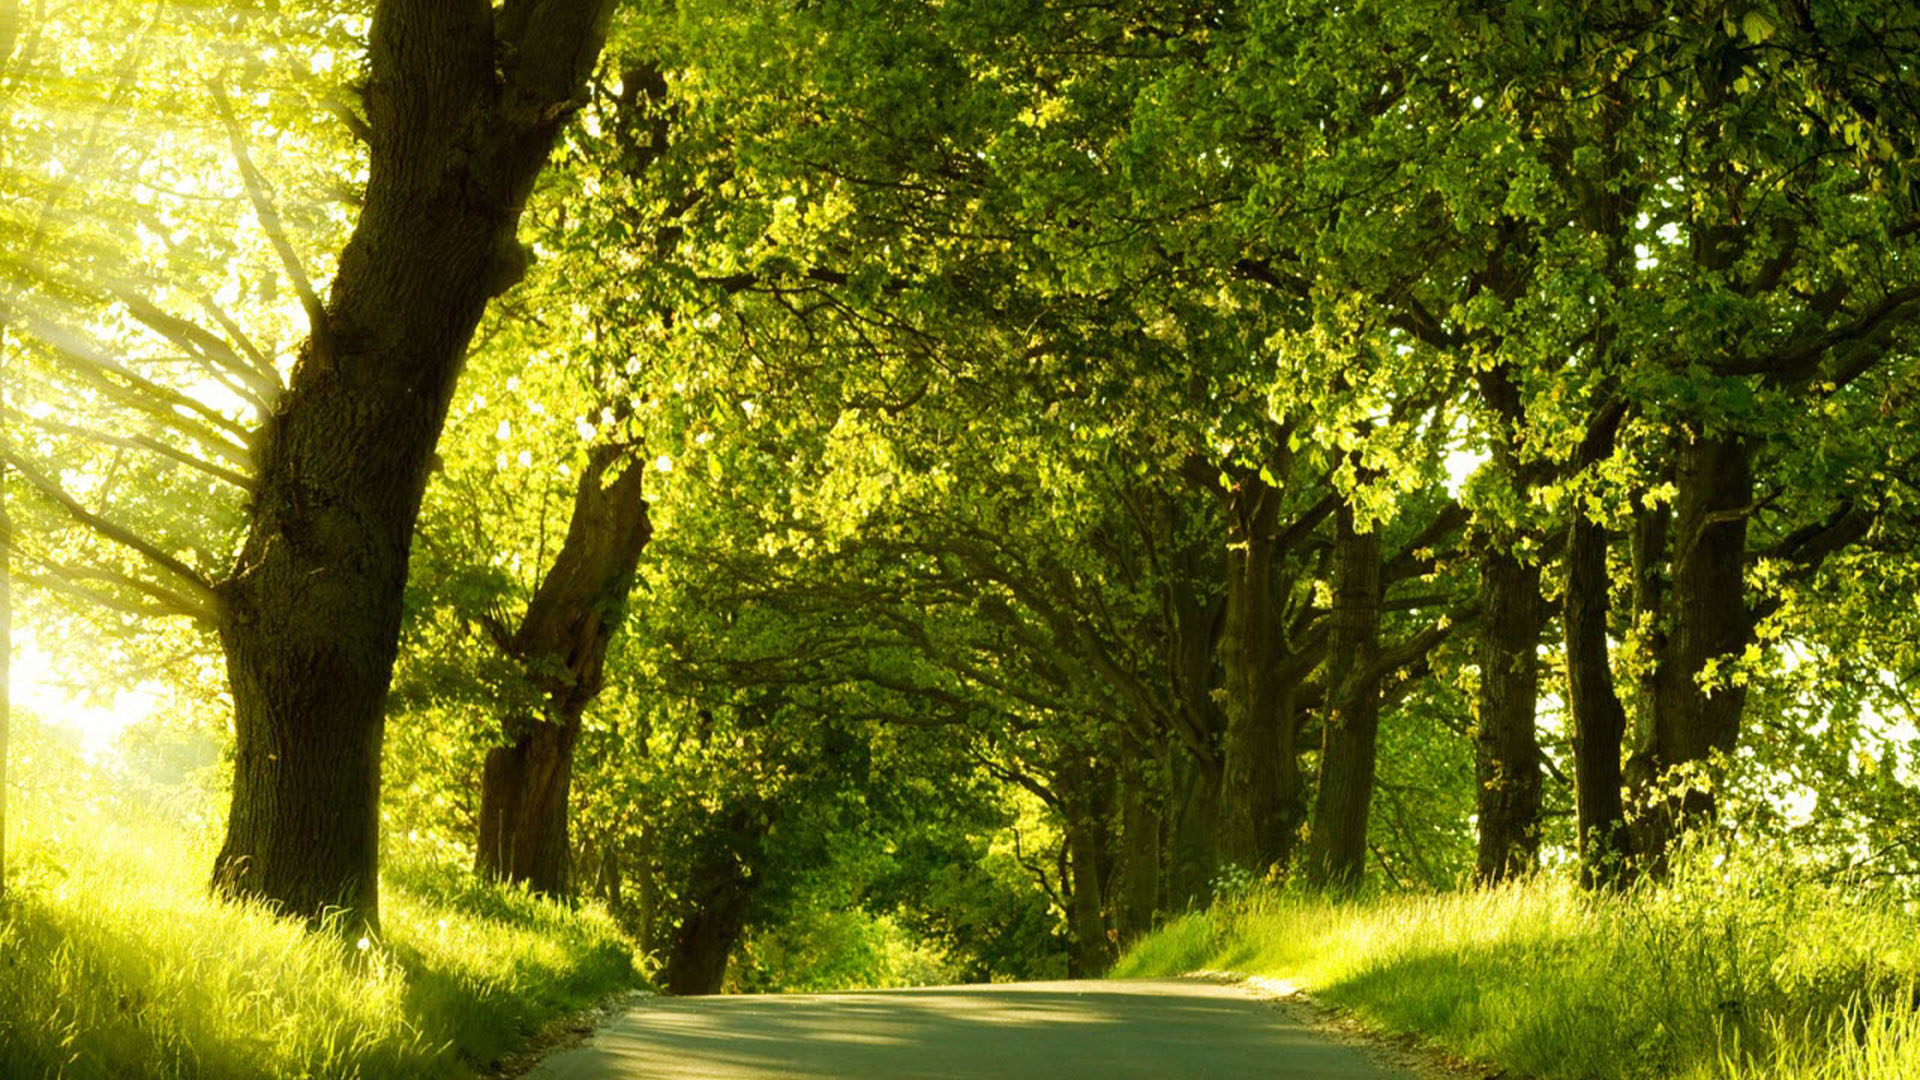 Green Nature Wallpapers HD Pictures | Live HD Wallpaper HQ ...